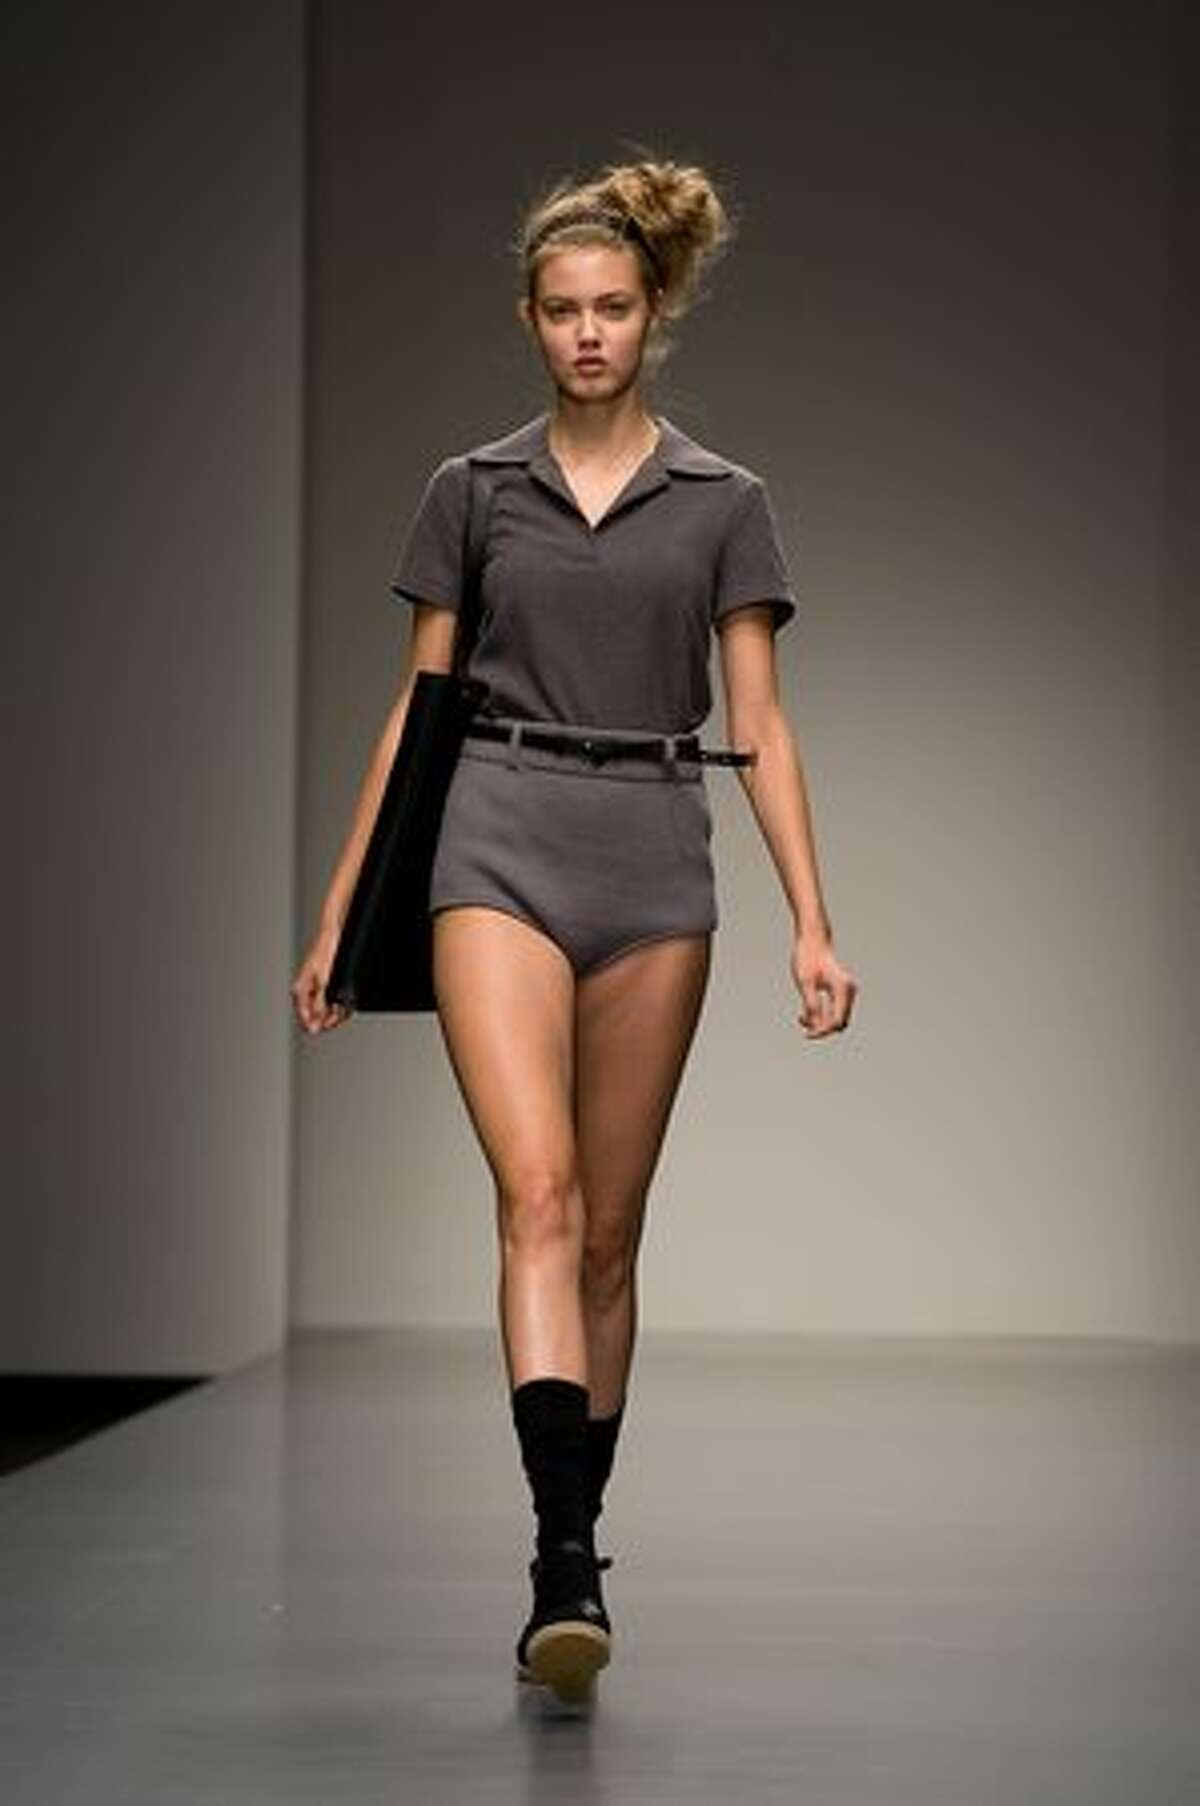 A model walks the catwalk at the Daks fashion show.